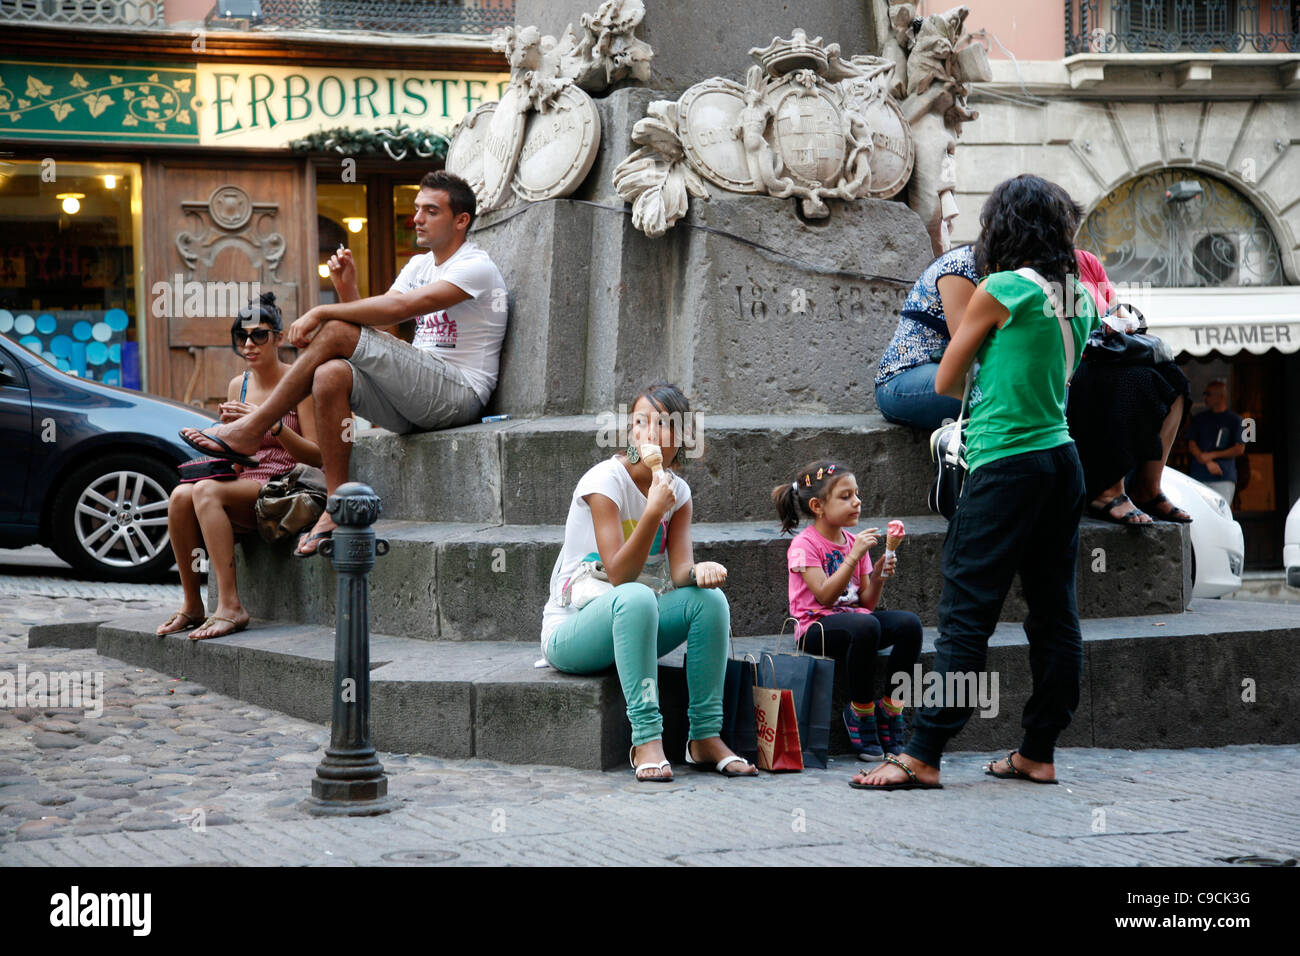 People eating ice cream at Via Giuseppe Manno, a pedestrian street with many shops, Cagliari, Sardinia, Italy. - Stock Image